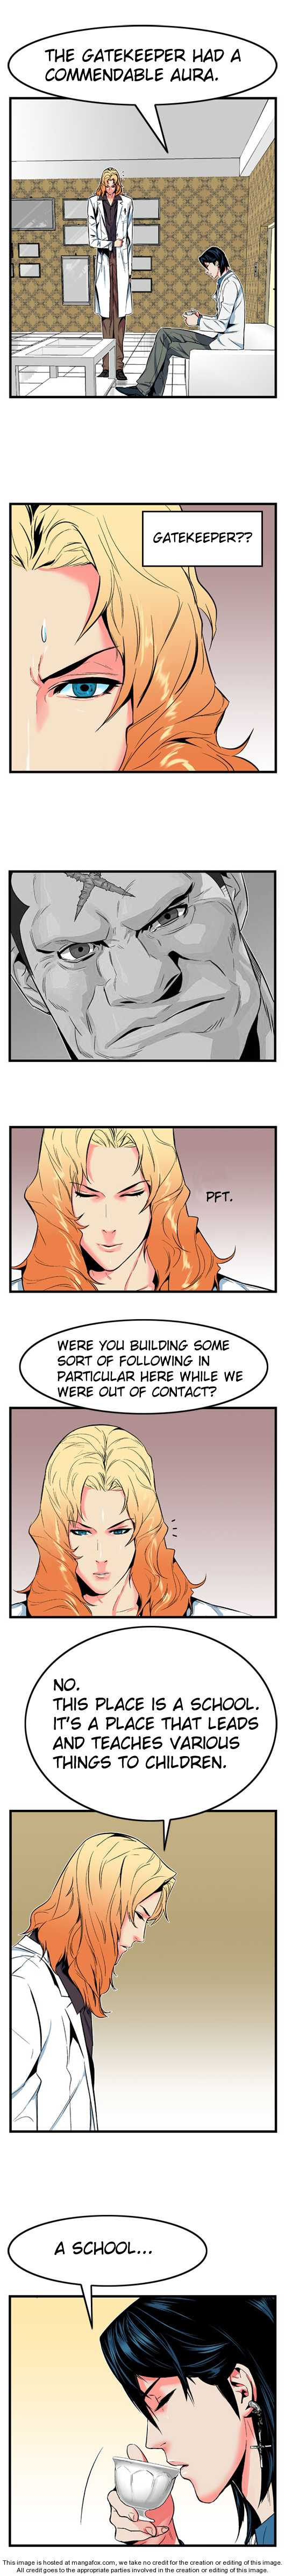 Noblesse 6 Page 5